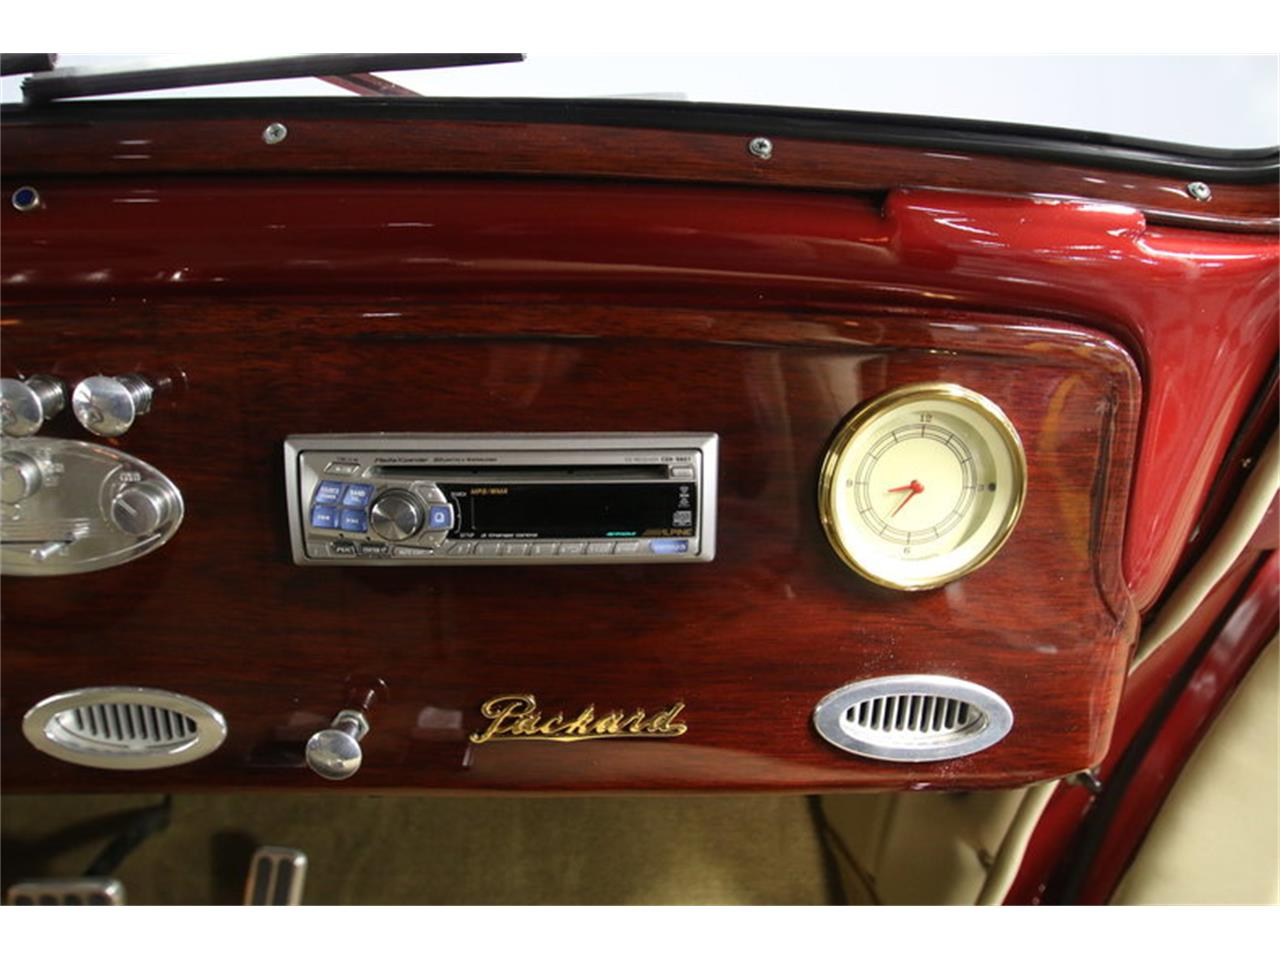 Large Picture of 1937 Packard 115 located in Concord North Carolina - $74,995.00 - MZJZ